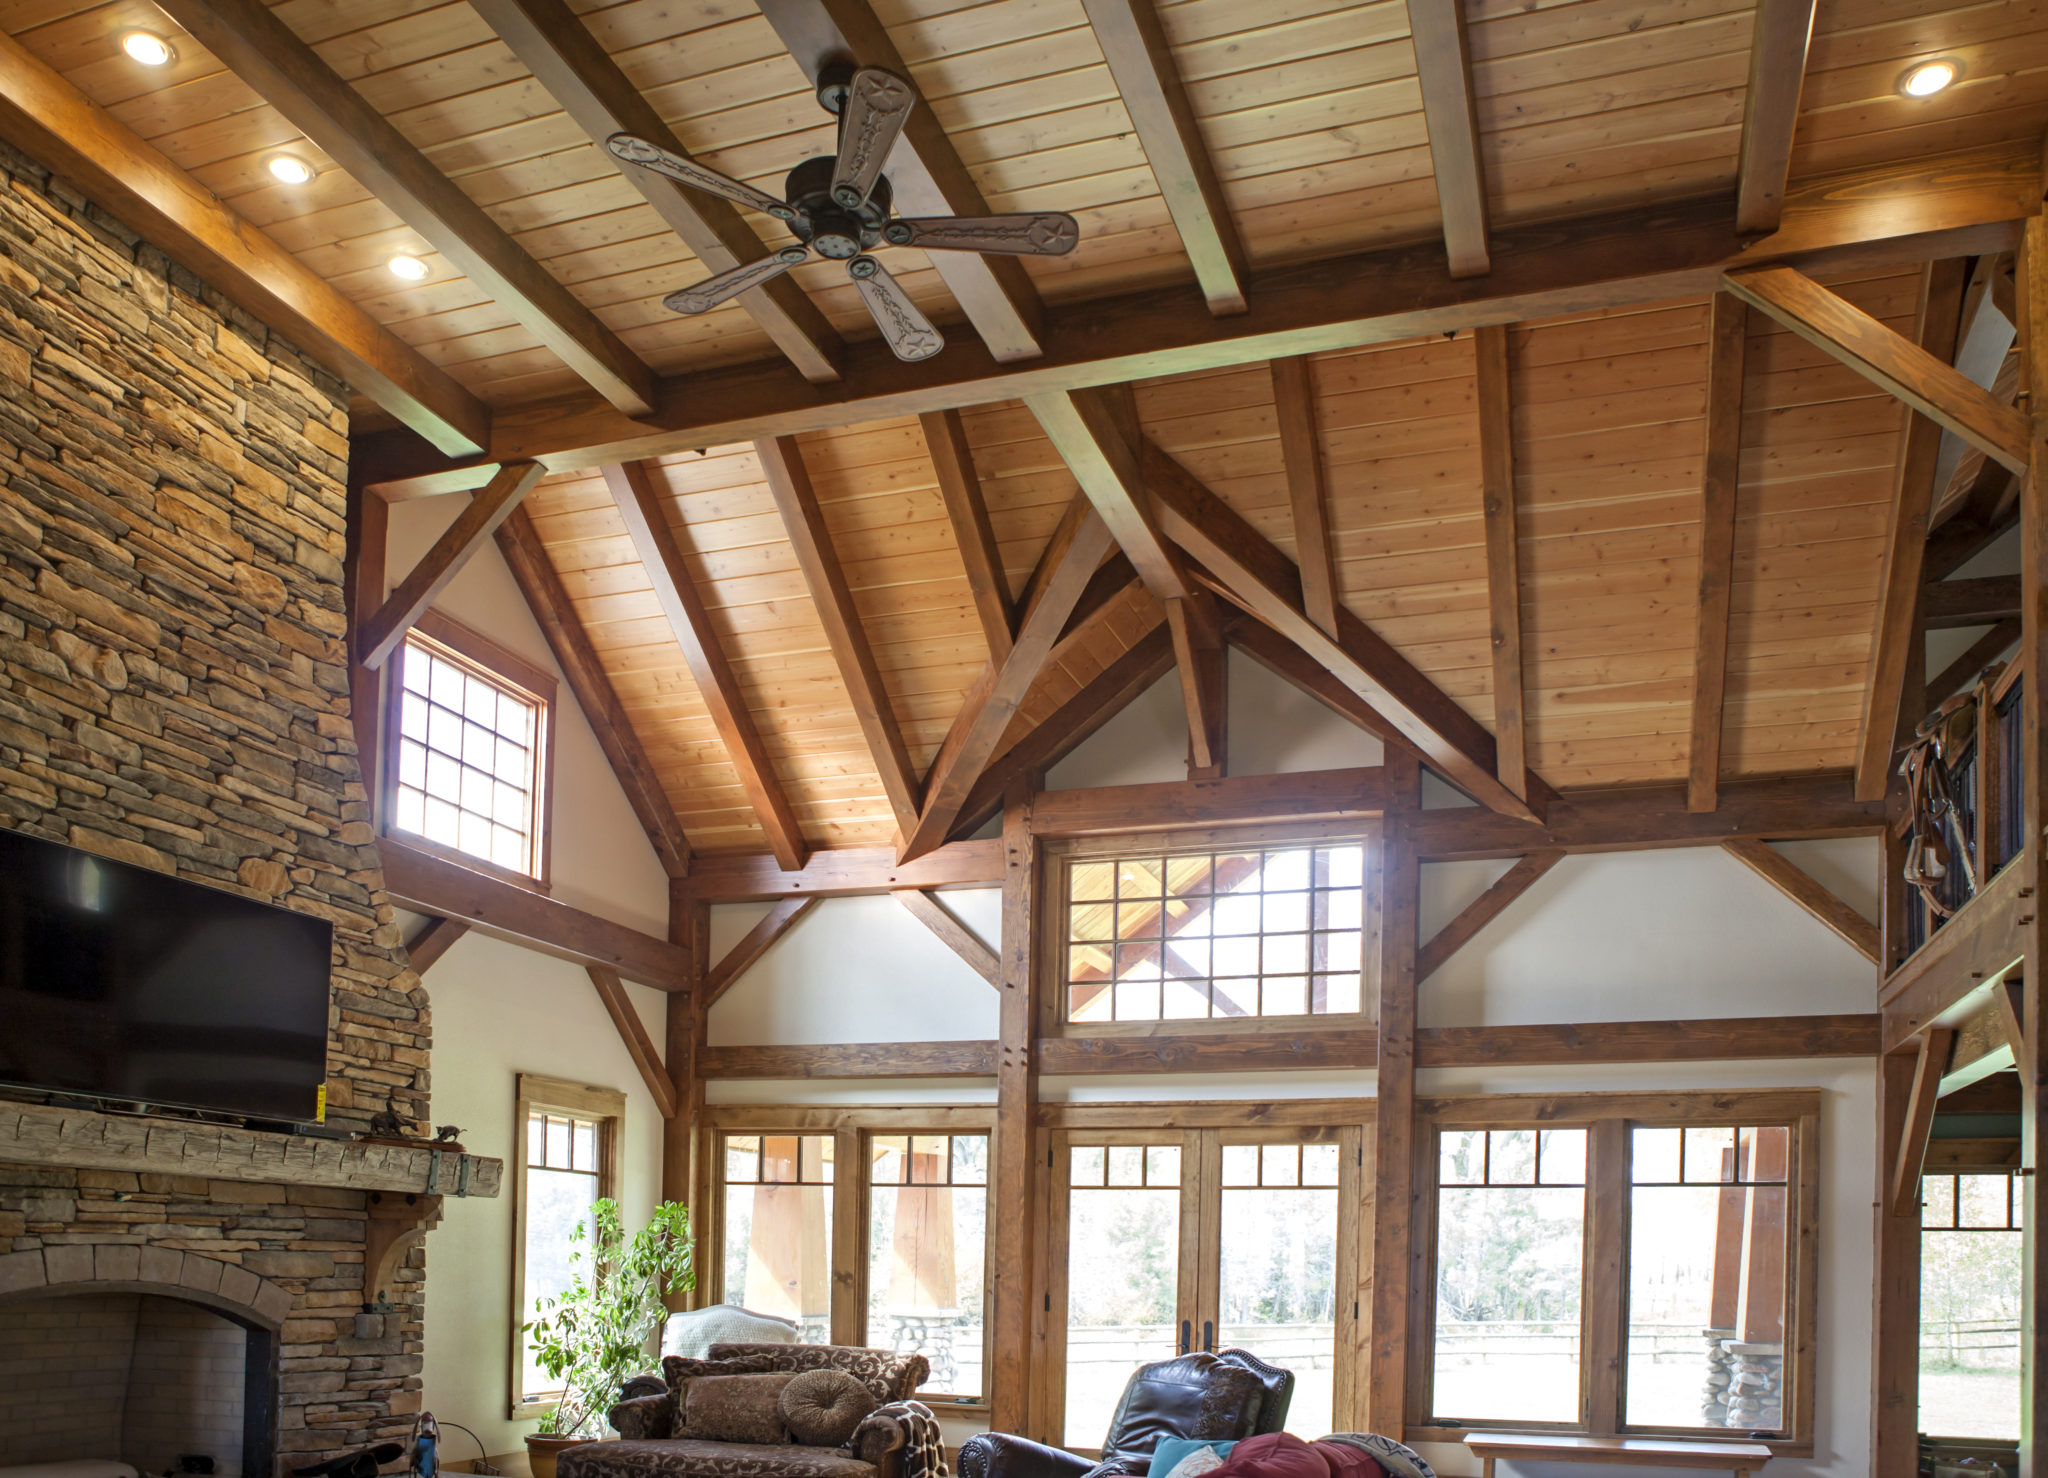 Design a timber frame home